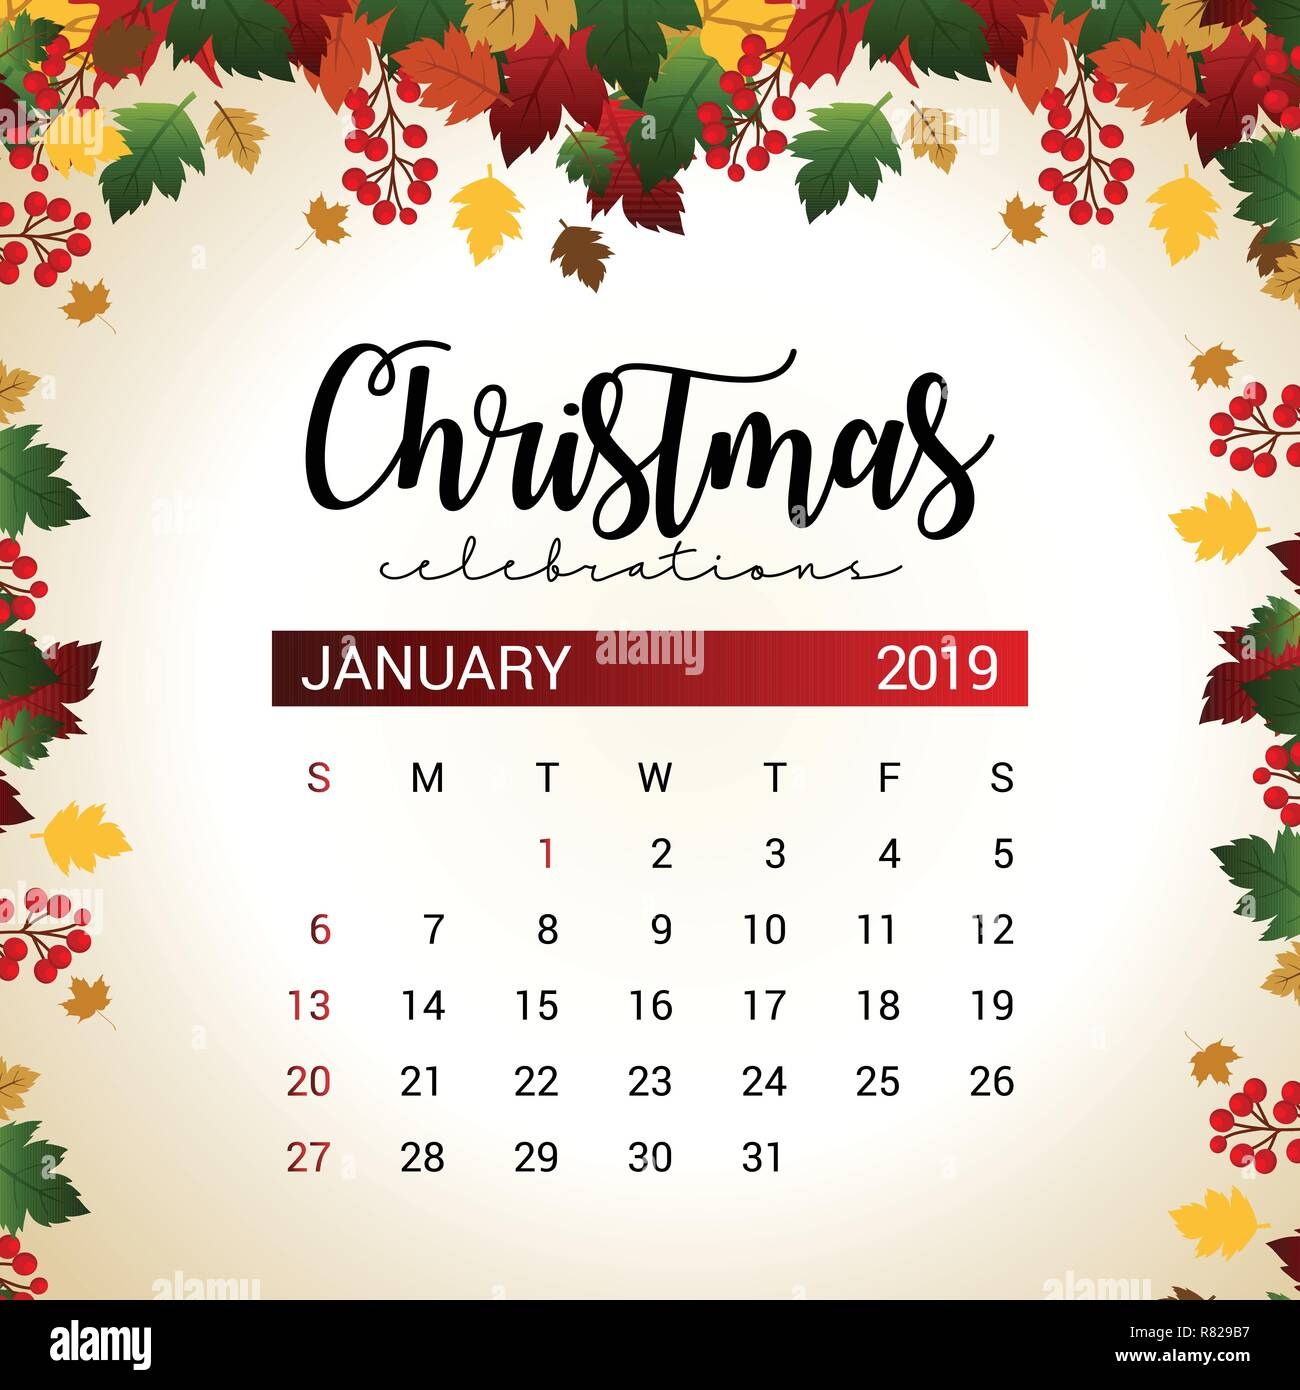 January 2019 Calendar Design 2019 January calendar design template of Christmas or New Year